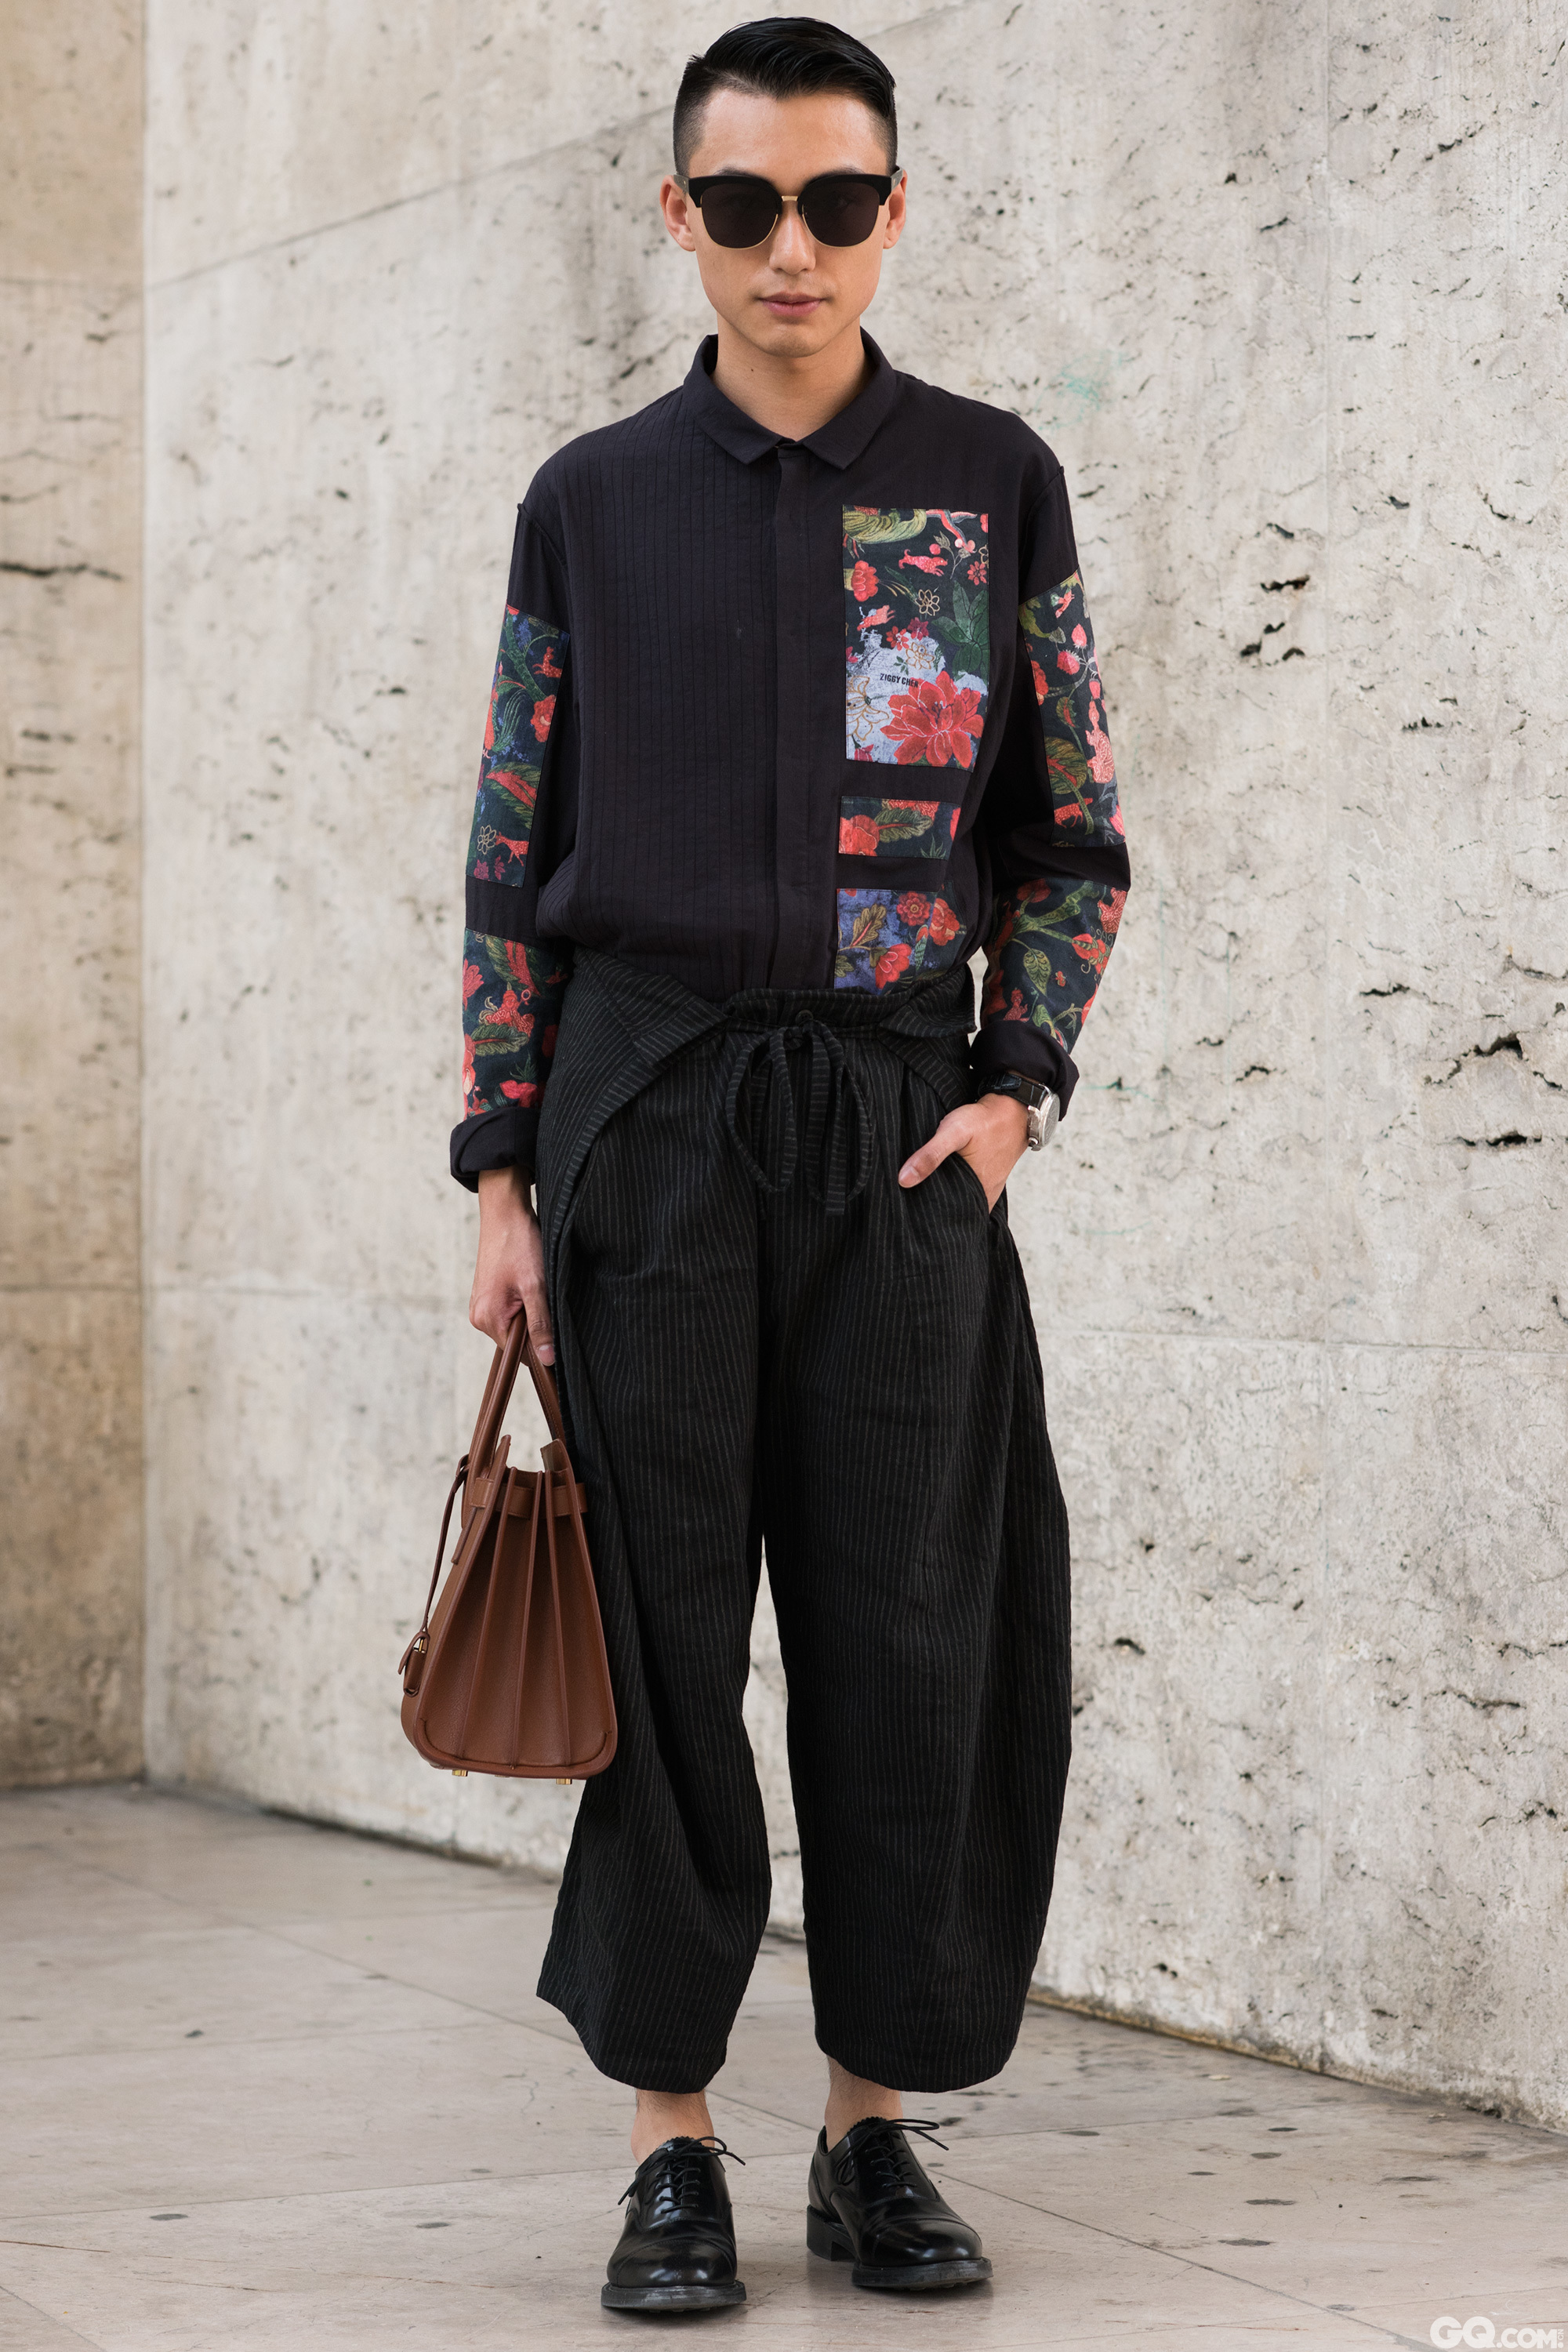 Sunglasses: Gentle Monster Shirts: Siqi Chen Trousers: Siqi Chen Shoes: Loaki Bag: Saint Laurent.  Inspiration: My friend Siqi Chen is a talented designer from China, so East meets West is my look today.  (我的朋友csq是一位来自中国有天赋的设计师,所以中西合壁就是我今天的灵感)